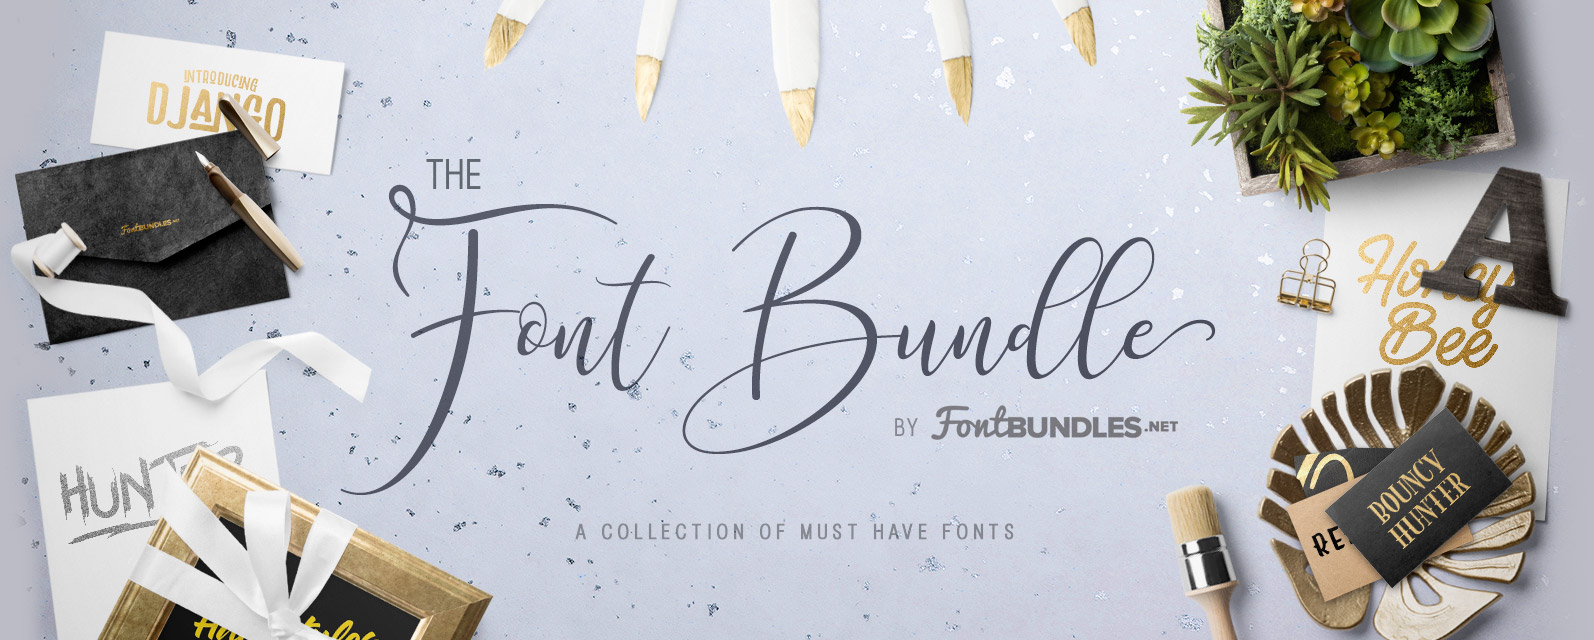 The Font Bundle Cover